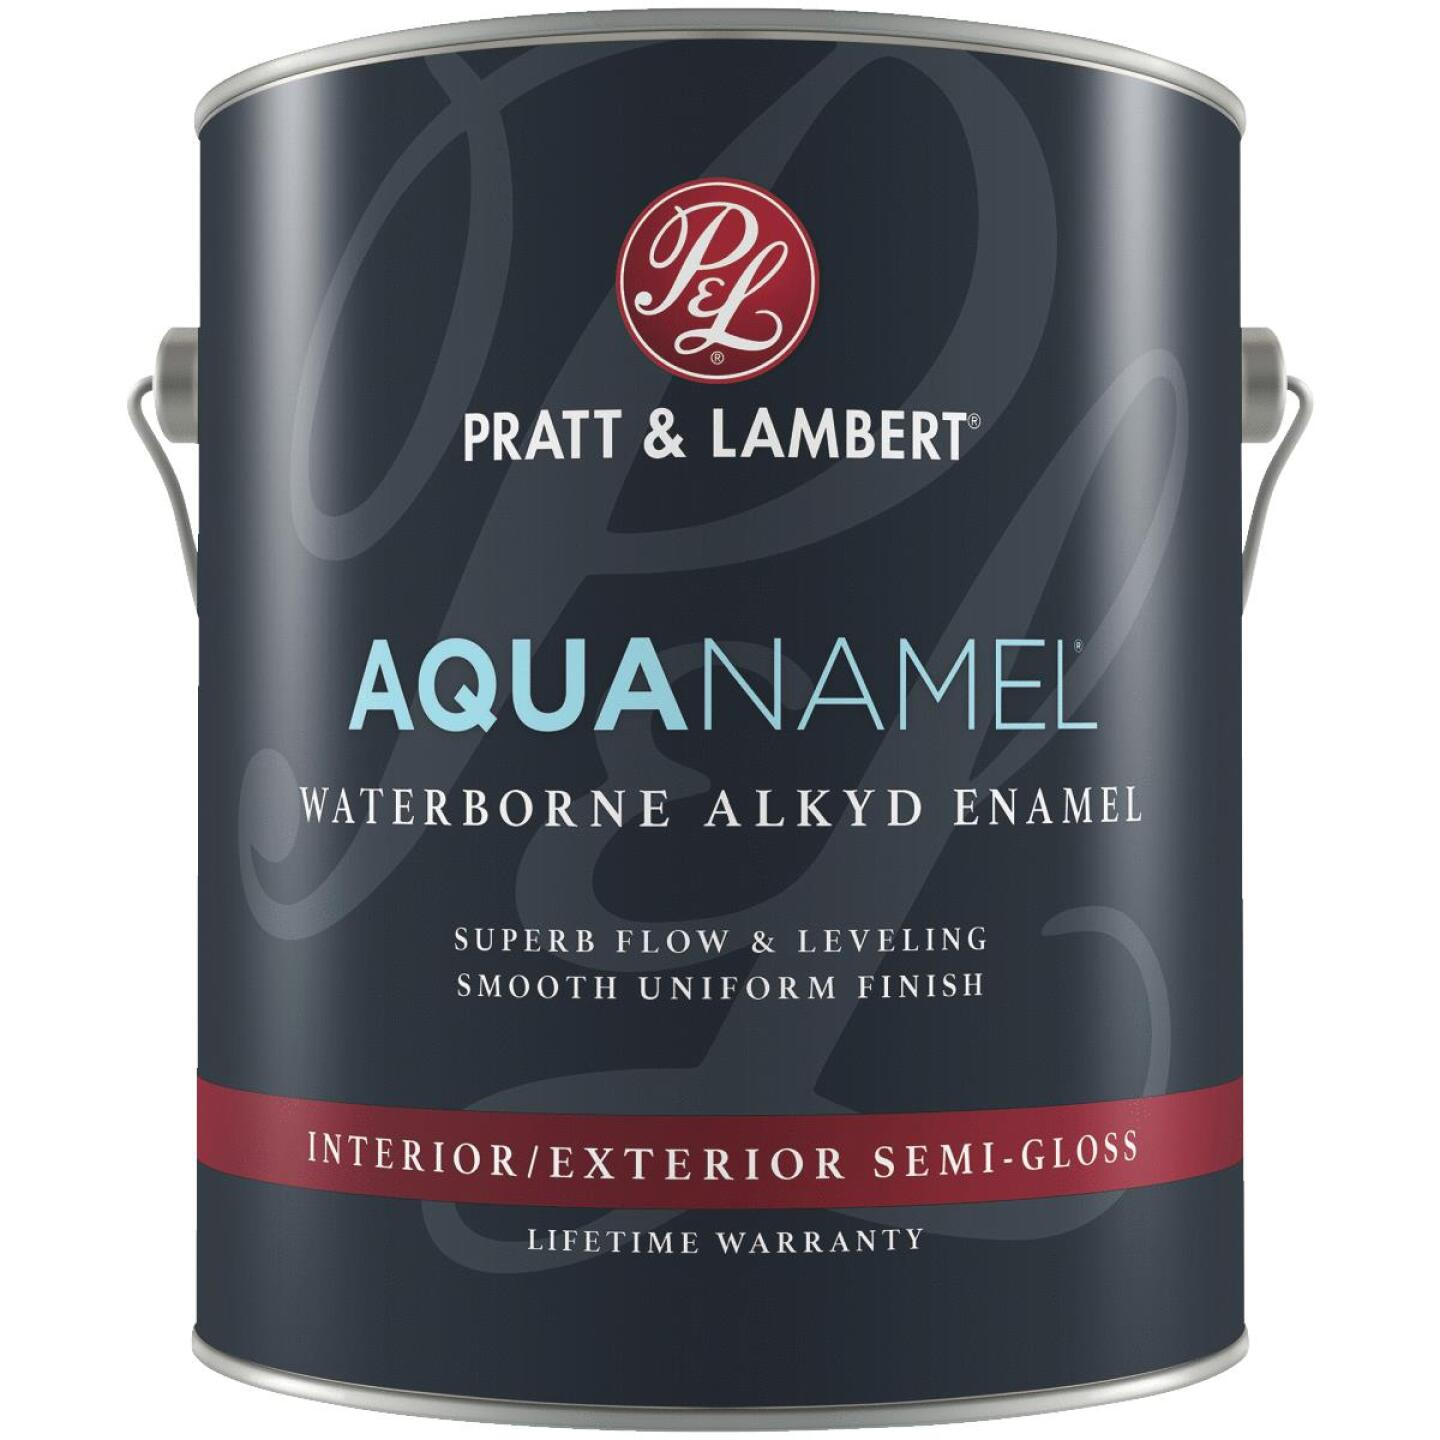 Pratt & Lambert Aquanamel Waterborne Alkyd Semi-Gloss Interior/Exterior Enamel, Bright White Base, 1 Gal. Image 1